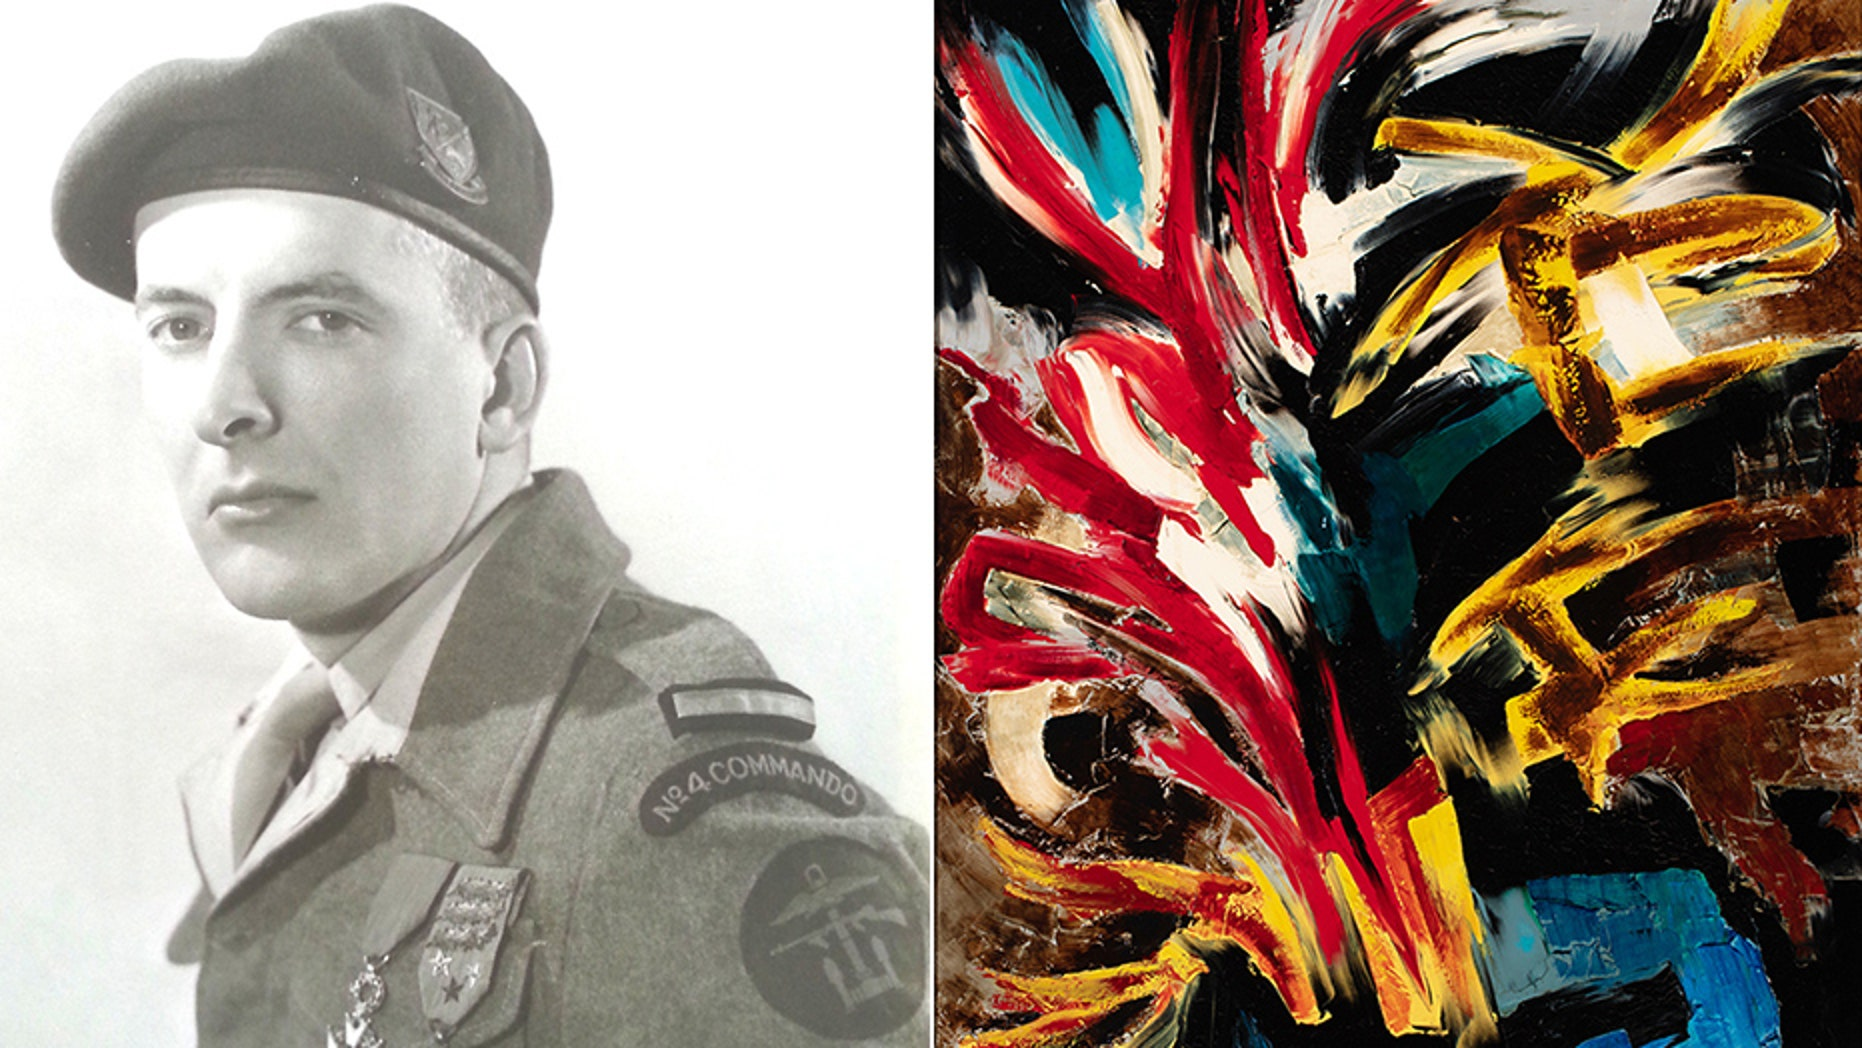 "Guy de Montlaur, a French World War II soldier, has a series of his paintings now on display at the National World War II Museum in New Orleans. At right is his 1957 painting ""Fire"", which the Museum says is titled as a ""reference to his wartime experiences"". (National World War II Museum/Courtesy Montlaur Family)"